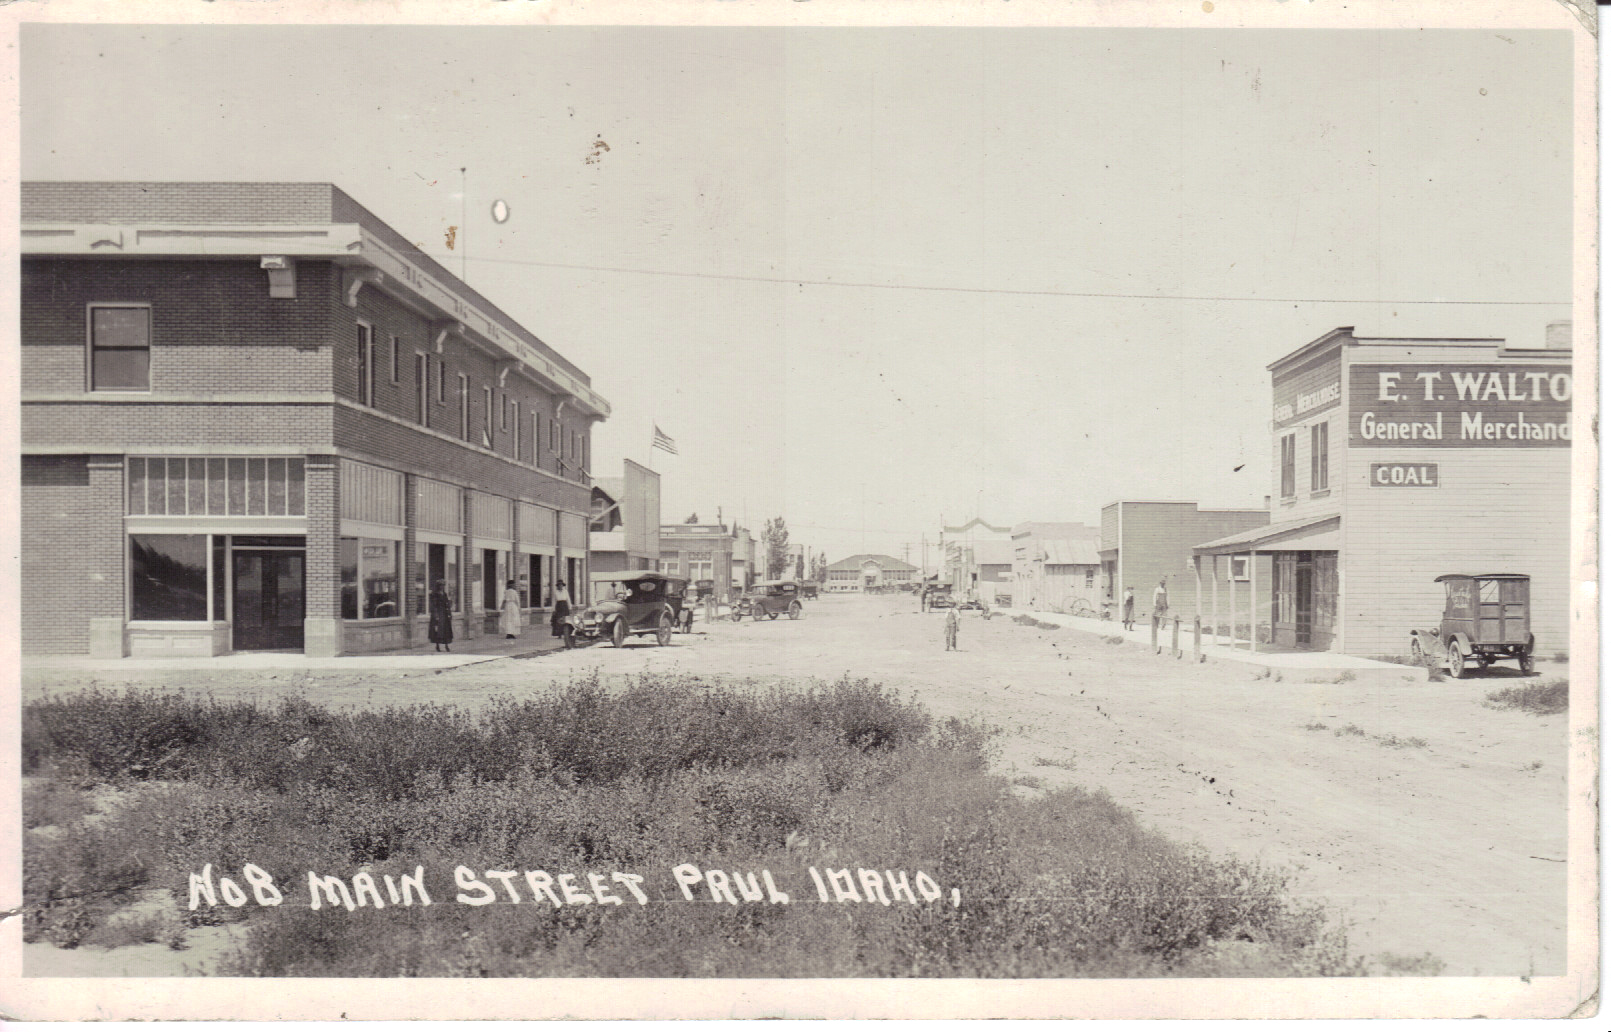 Main street, Paul, Idaho